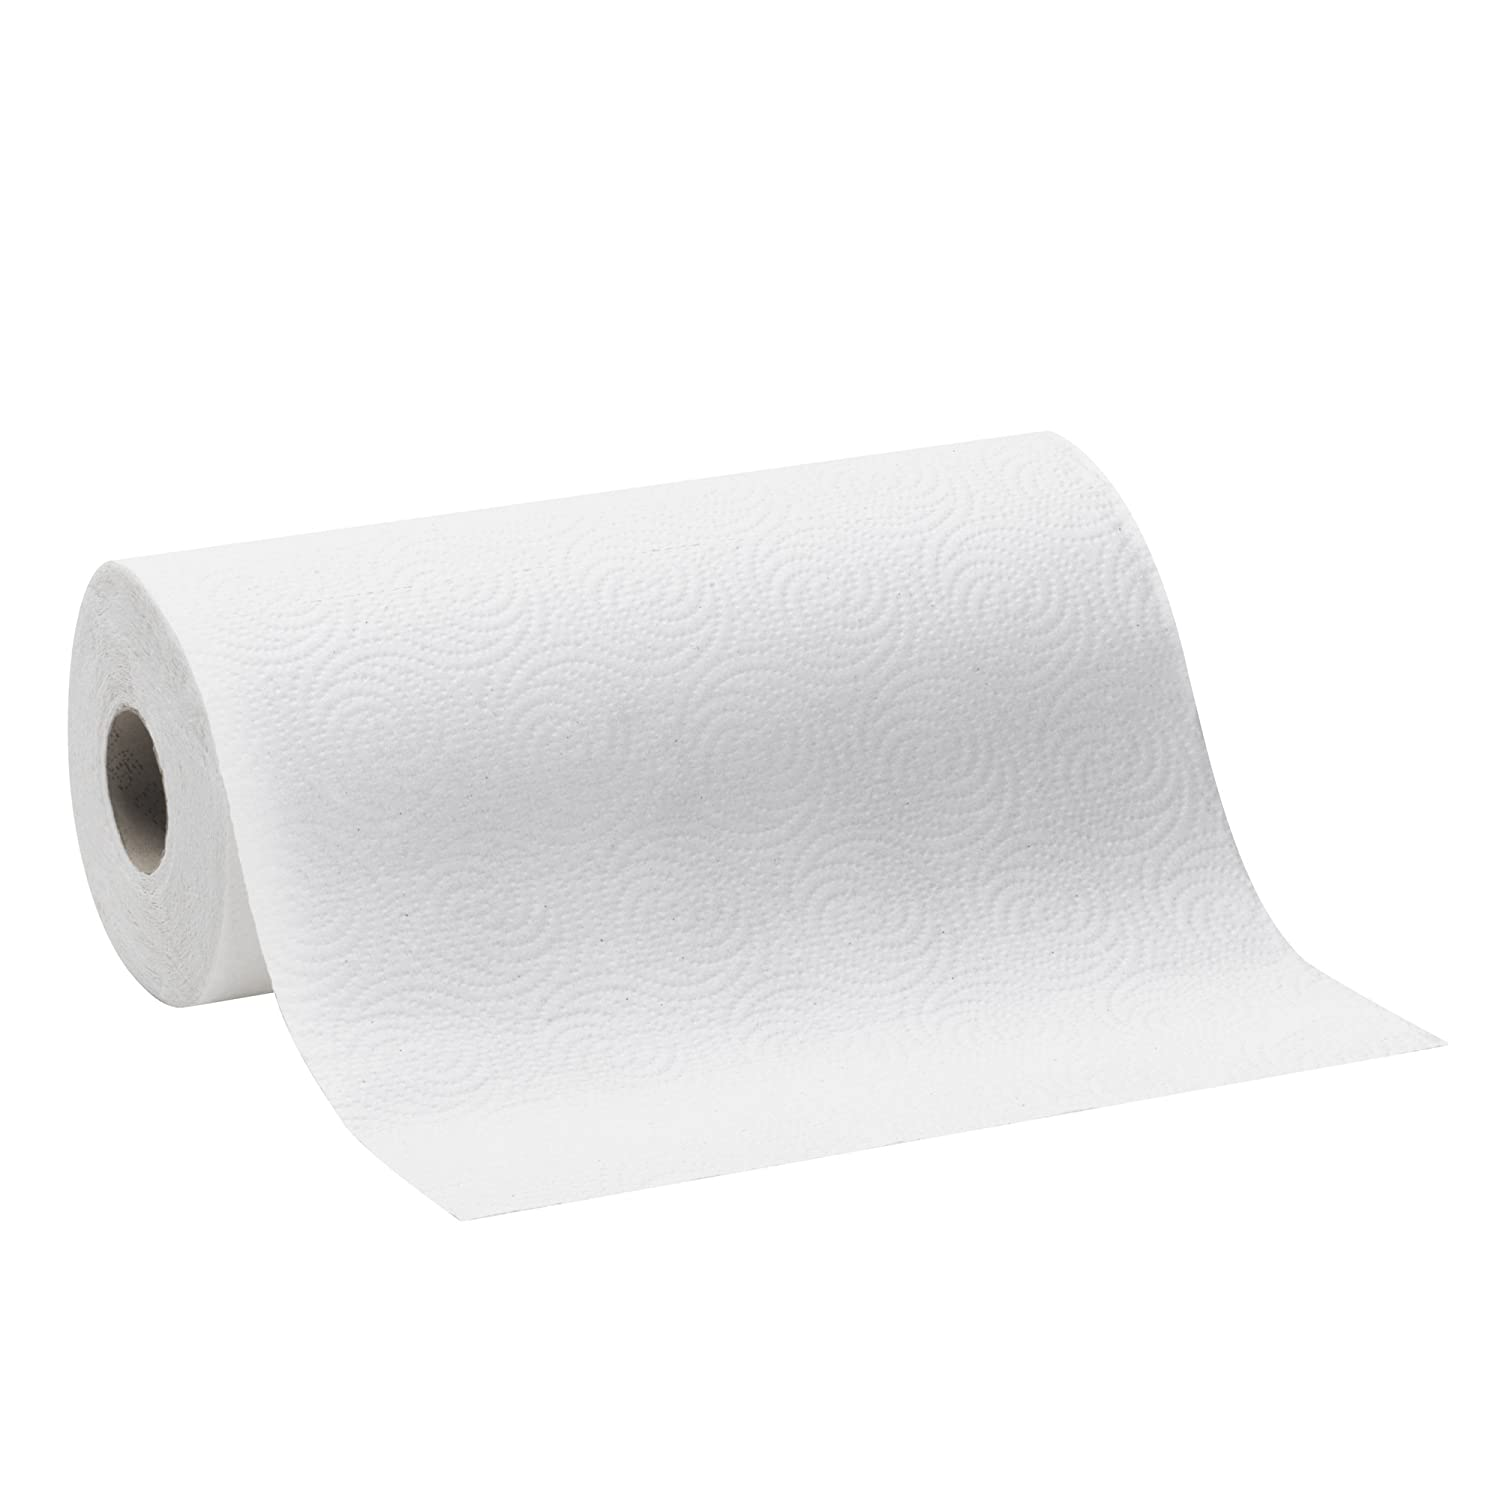 paper towel. Georgia Pacific Preference 27385 White 2 Ply Perforated Paper Towel Roll  8 Length x 11 Width Case of 30 Rolls 85 per Amazon com Home